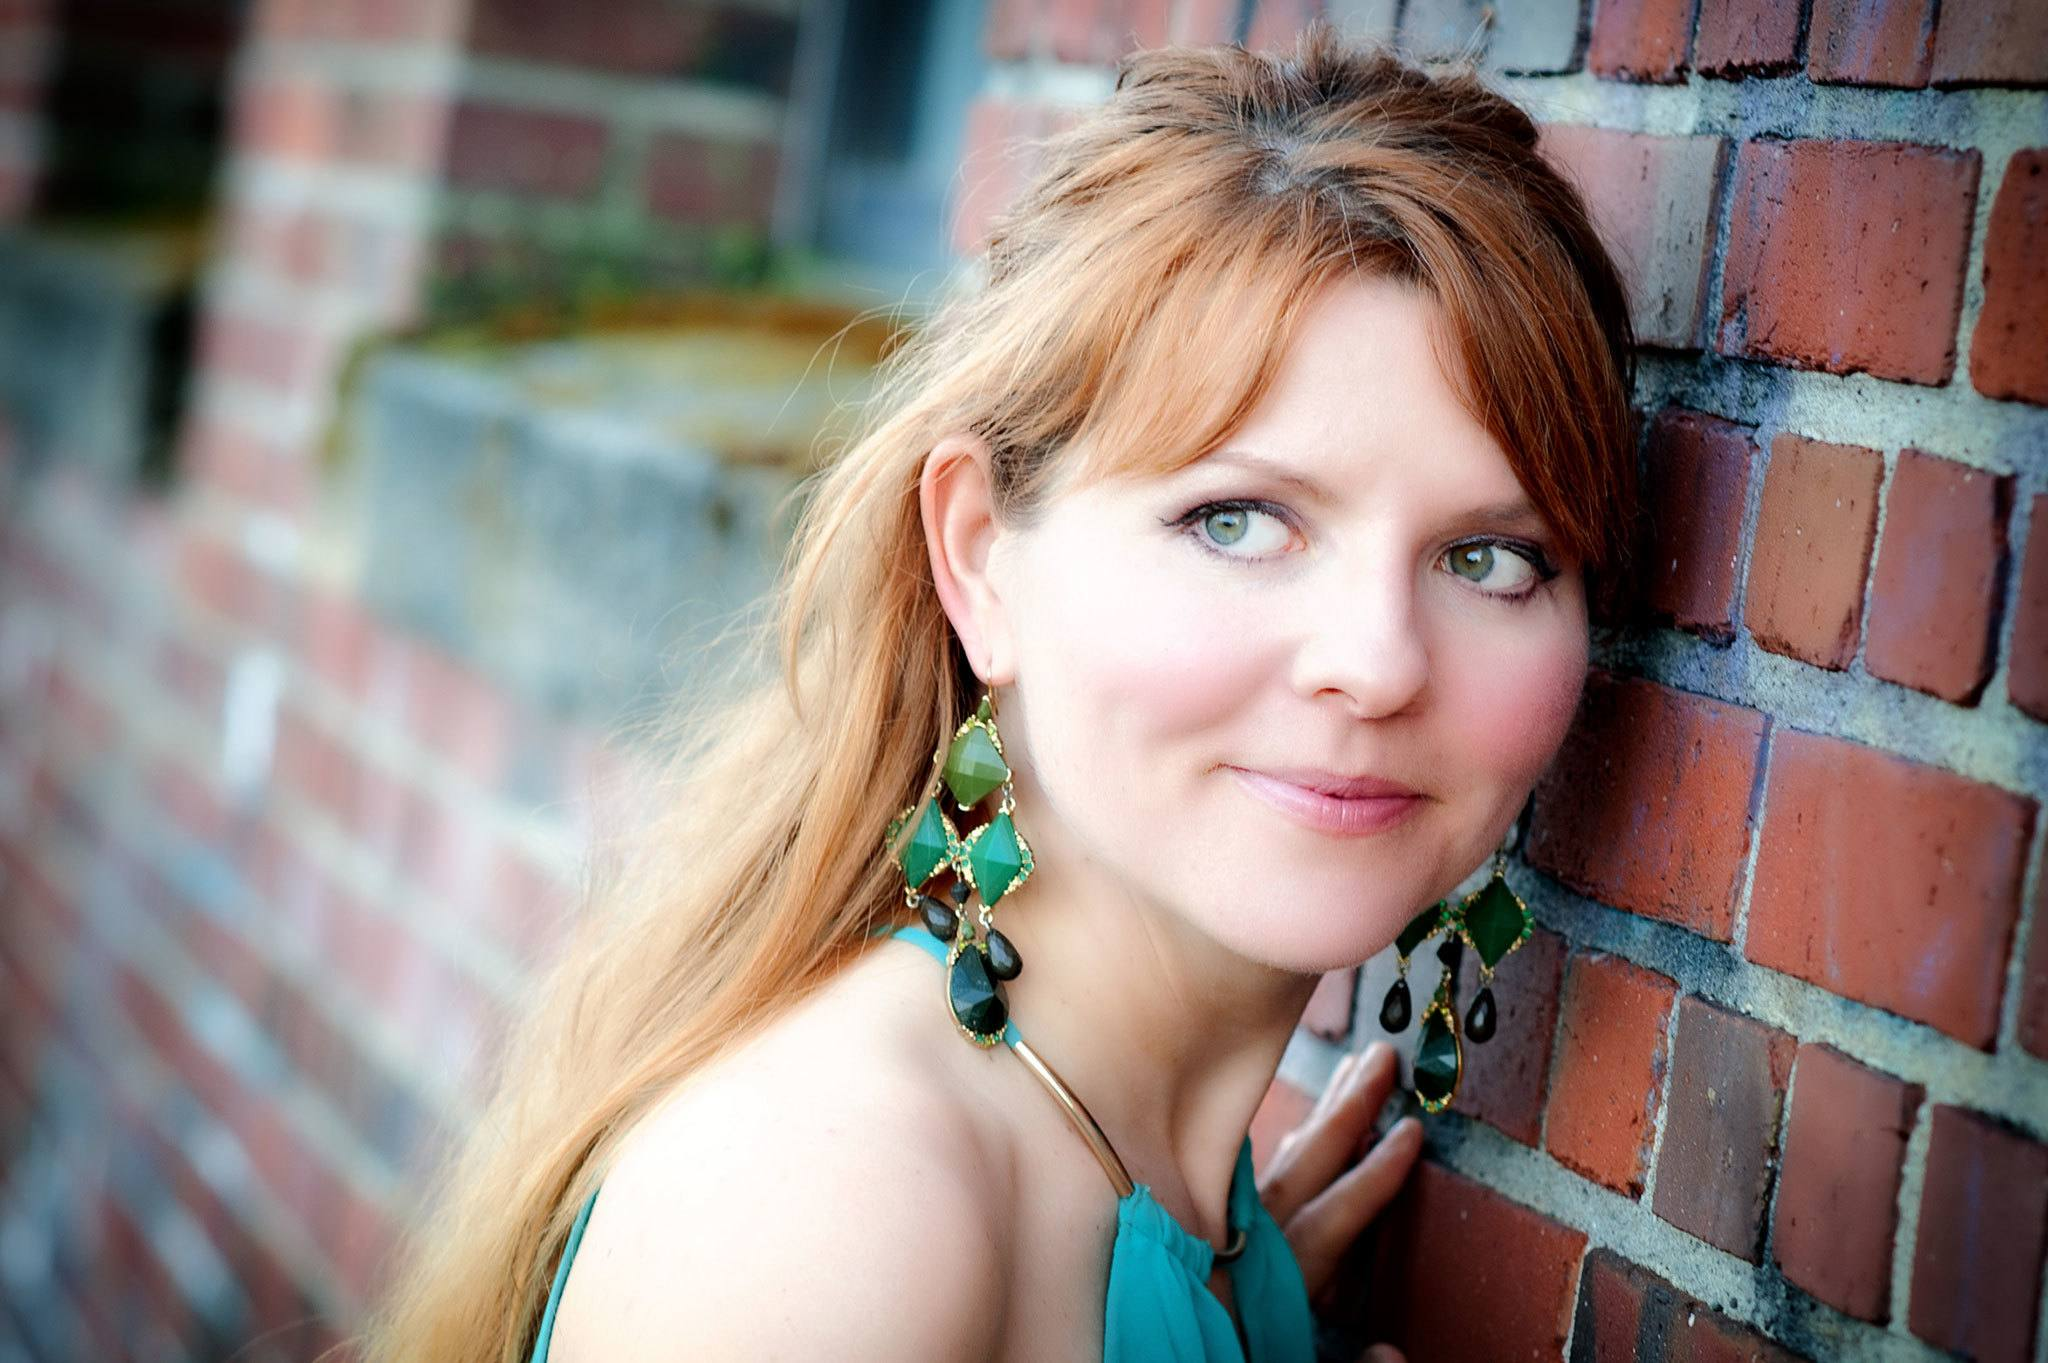 Sarah Shea performs Friday, Feb. 17, at Olympic Theatre Arts. Submitted photo